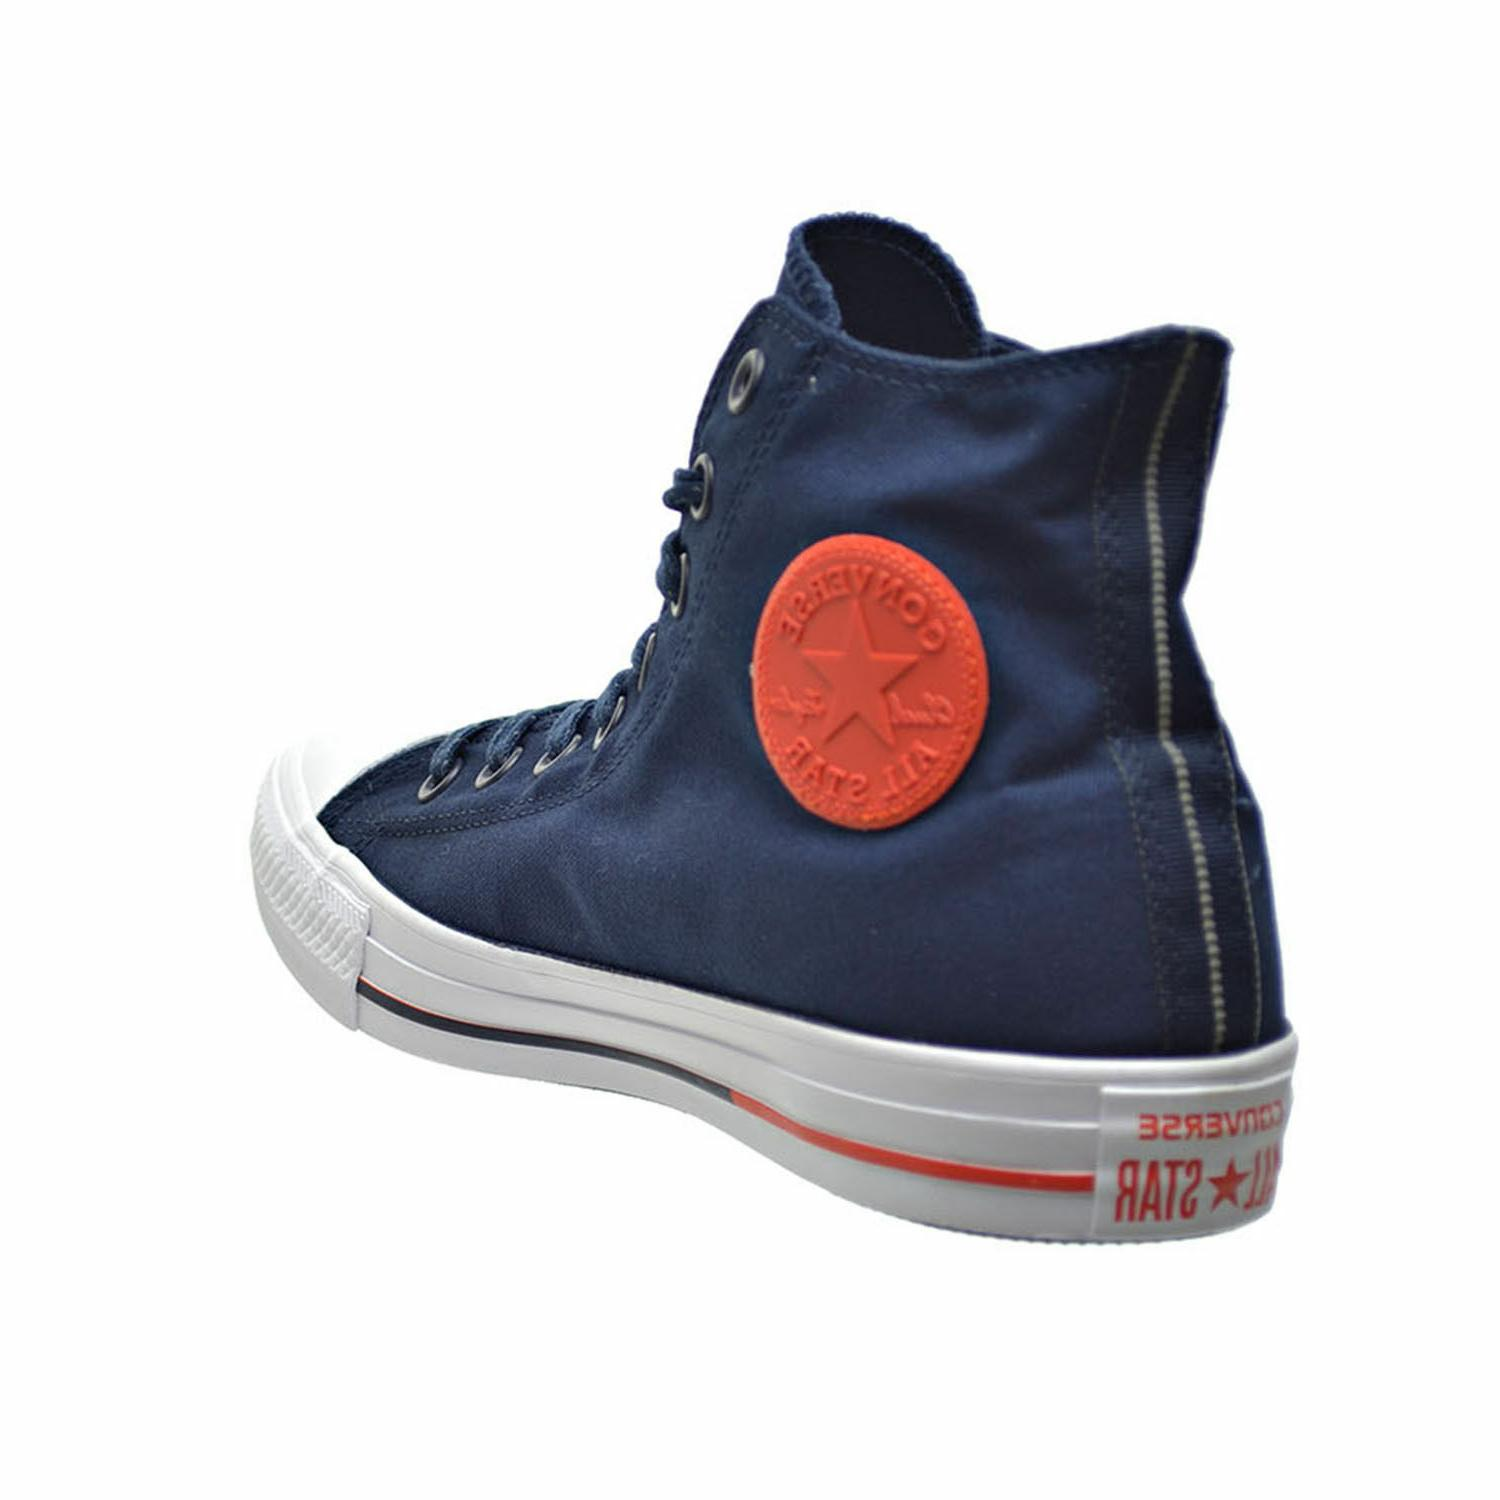 Converse Taylor Star Obsidian Sneakers